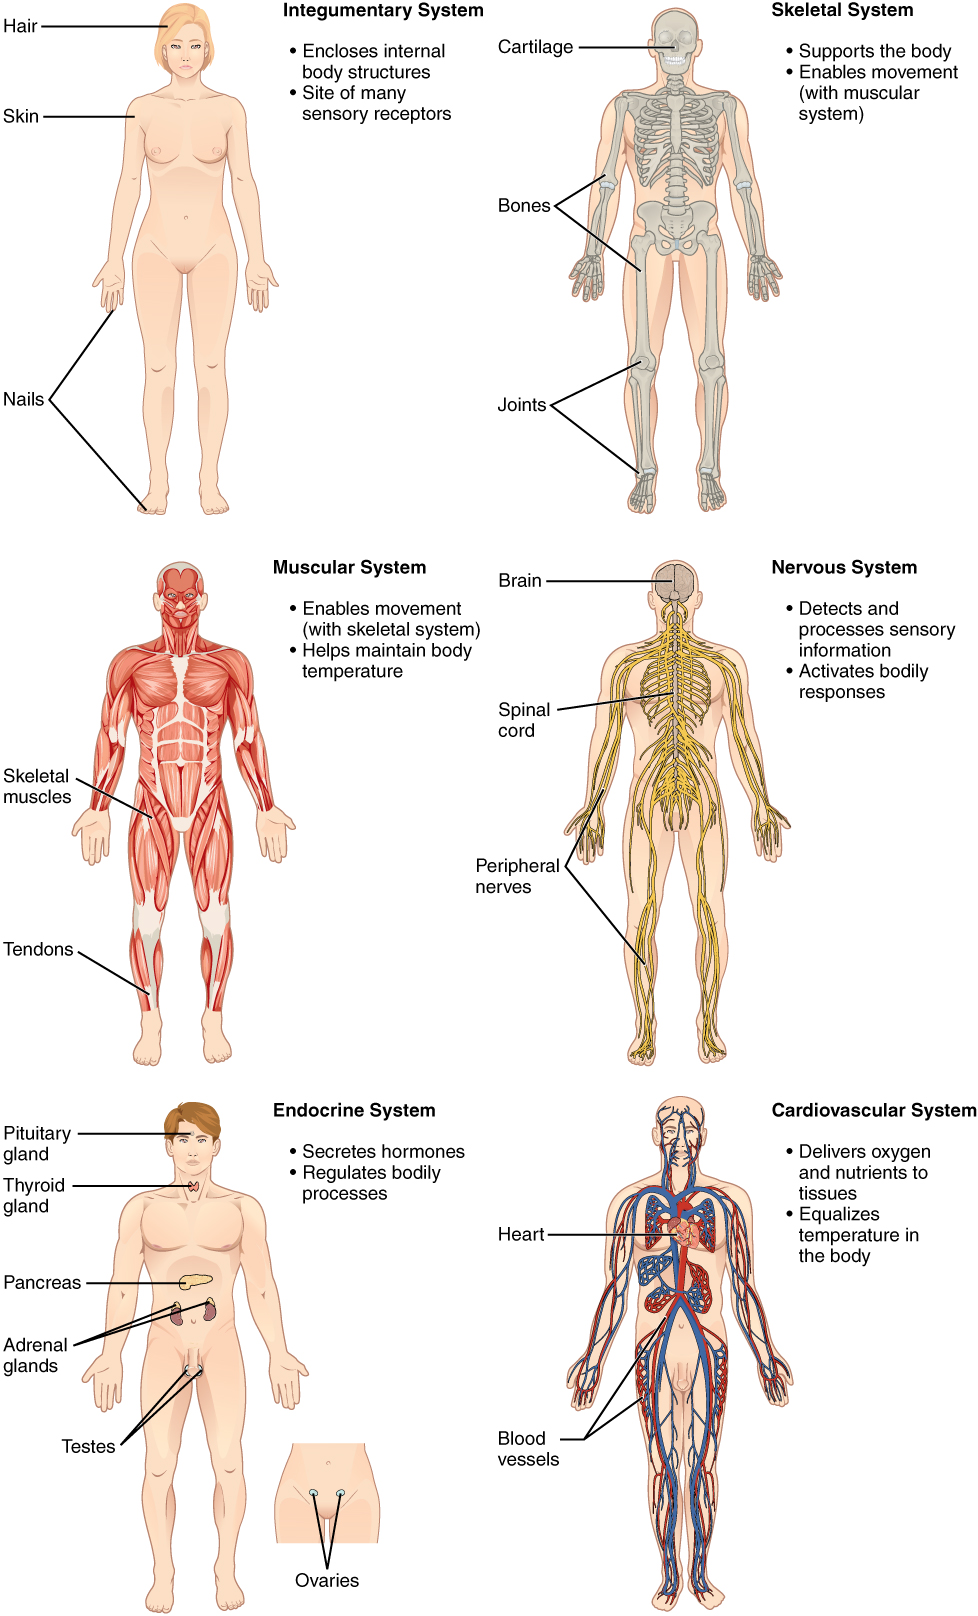 Diagram Of Human Body Organs And Cells - House Wiring Diagram Symbols •